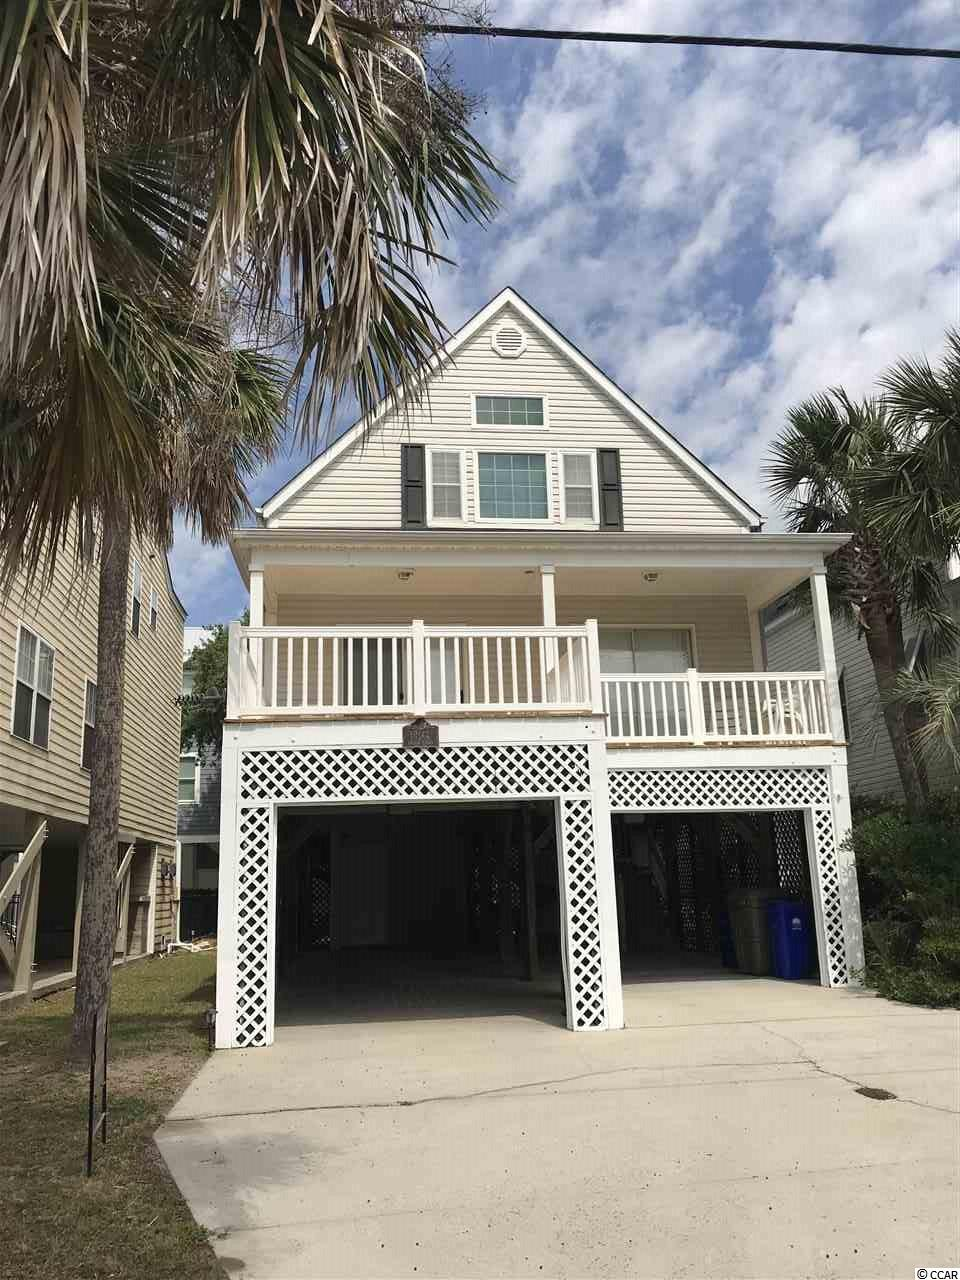 "This immaculate home sits just one row off of the Atlantic Ocean. Ideal open floor plan featuring 3 bedrooms and 3 full baths with high grade laminate wood floors. Front deck offers room for entertaining or just to relax with an ocean view. The ""Dream Maker"" house would be a great investment or vacation home for all beach lovers. Home is completely furnished turnkey, including washer and dryer. New roof installed in 2017. Deck has been redone in 2019. Close to the Garden City Pier and Surfside Beach Pier. Home is located close to entertainment, shopping and dining. Priced Thousands less than County Appraisal!"